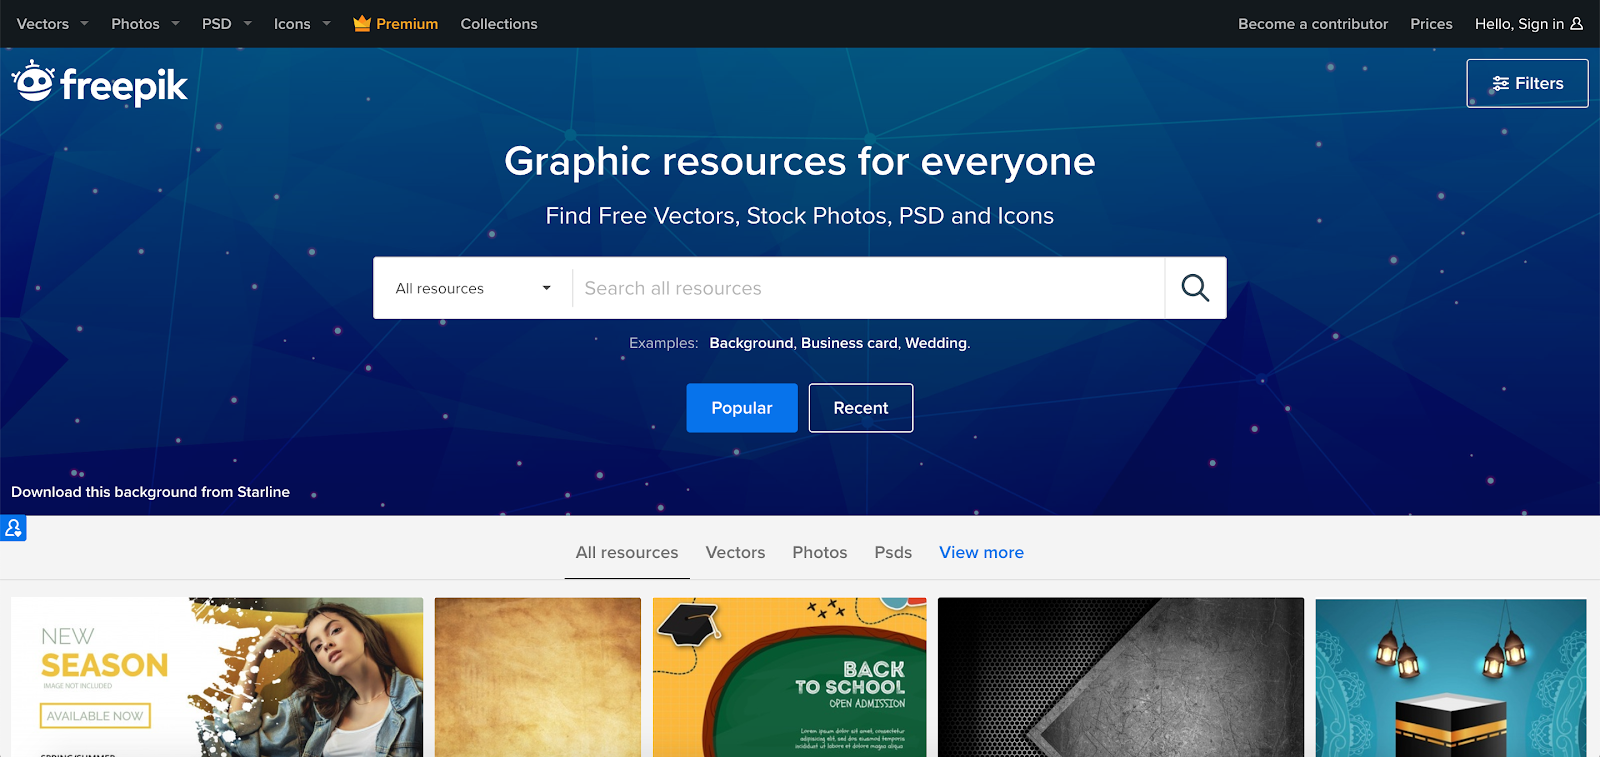 Freepik is a large stock of high-quality vector images, photos, website icons , and PSD templates.